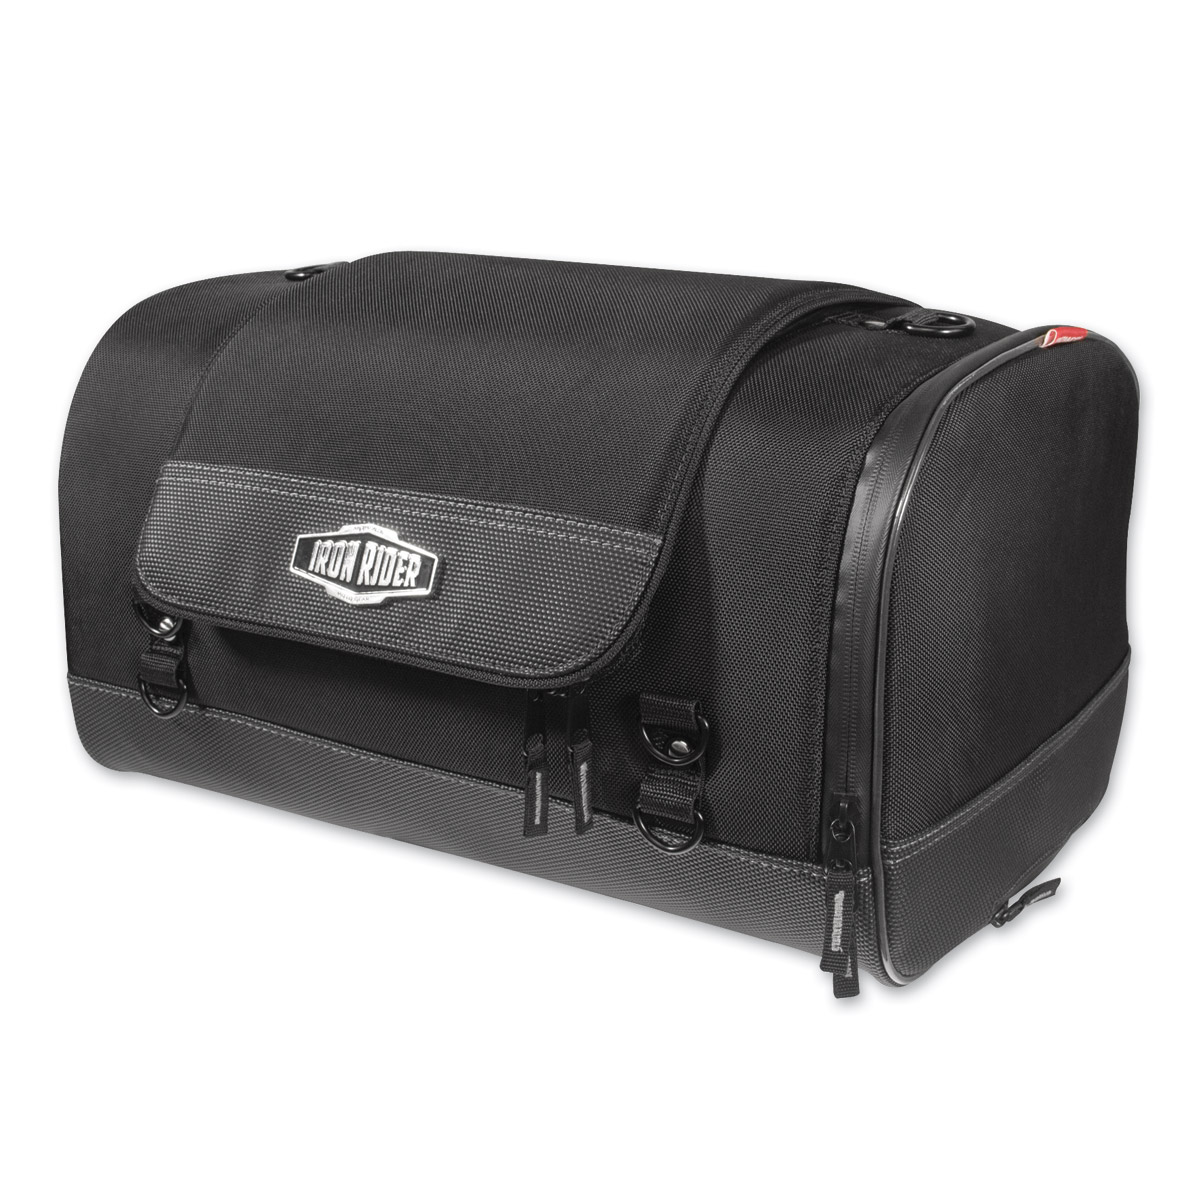 Dowco Iron Rider Large Roll Bag